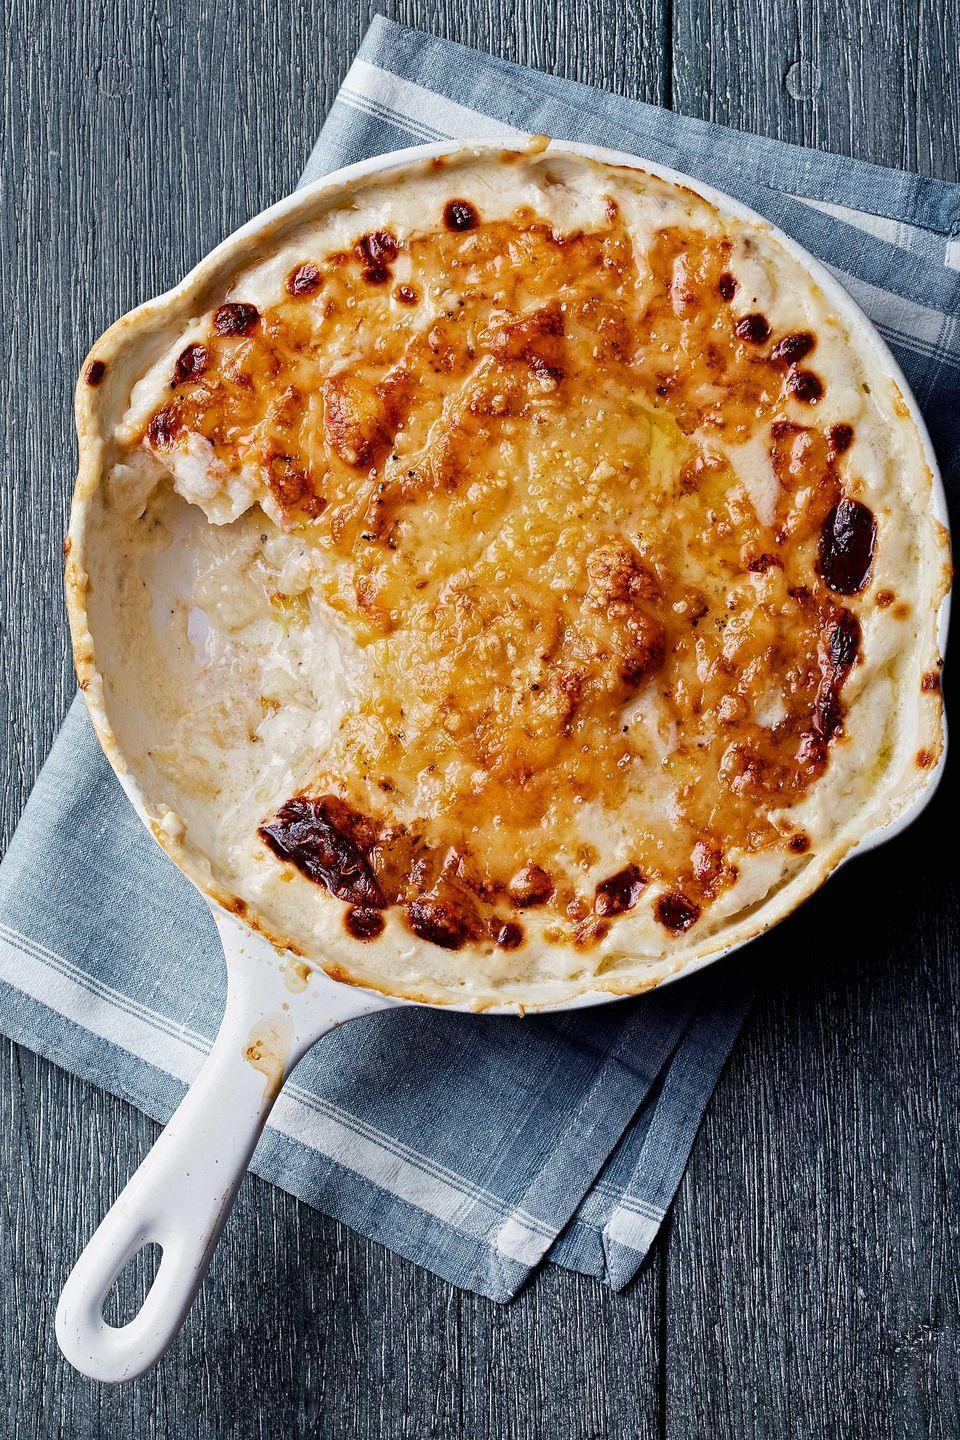 "<p>This crowd-pleasing casserole combines little more than russet potatoes, Gruyère, and cream. Rubbing garlic on the pan before cooking contributes mellow depth to a rich classic.</p><p><strong><a href=""https://www.countryliving.com/food-drinks/recipes/a4567/potato-gratin-recipe-clx1113/"" rel=""nofollow noopener"" target=""_blank"" data-ylk=""slk:Get the recipe"" class=""link rapid-noclick-resp"">Get the recipe</a>.</strong></p>"